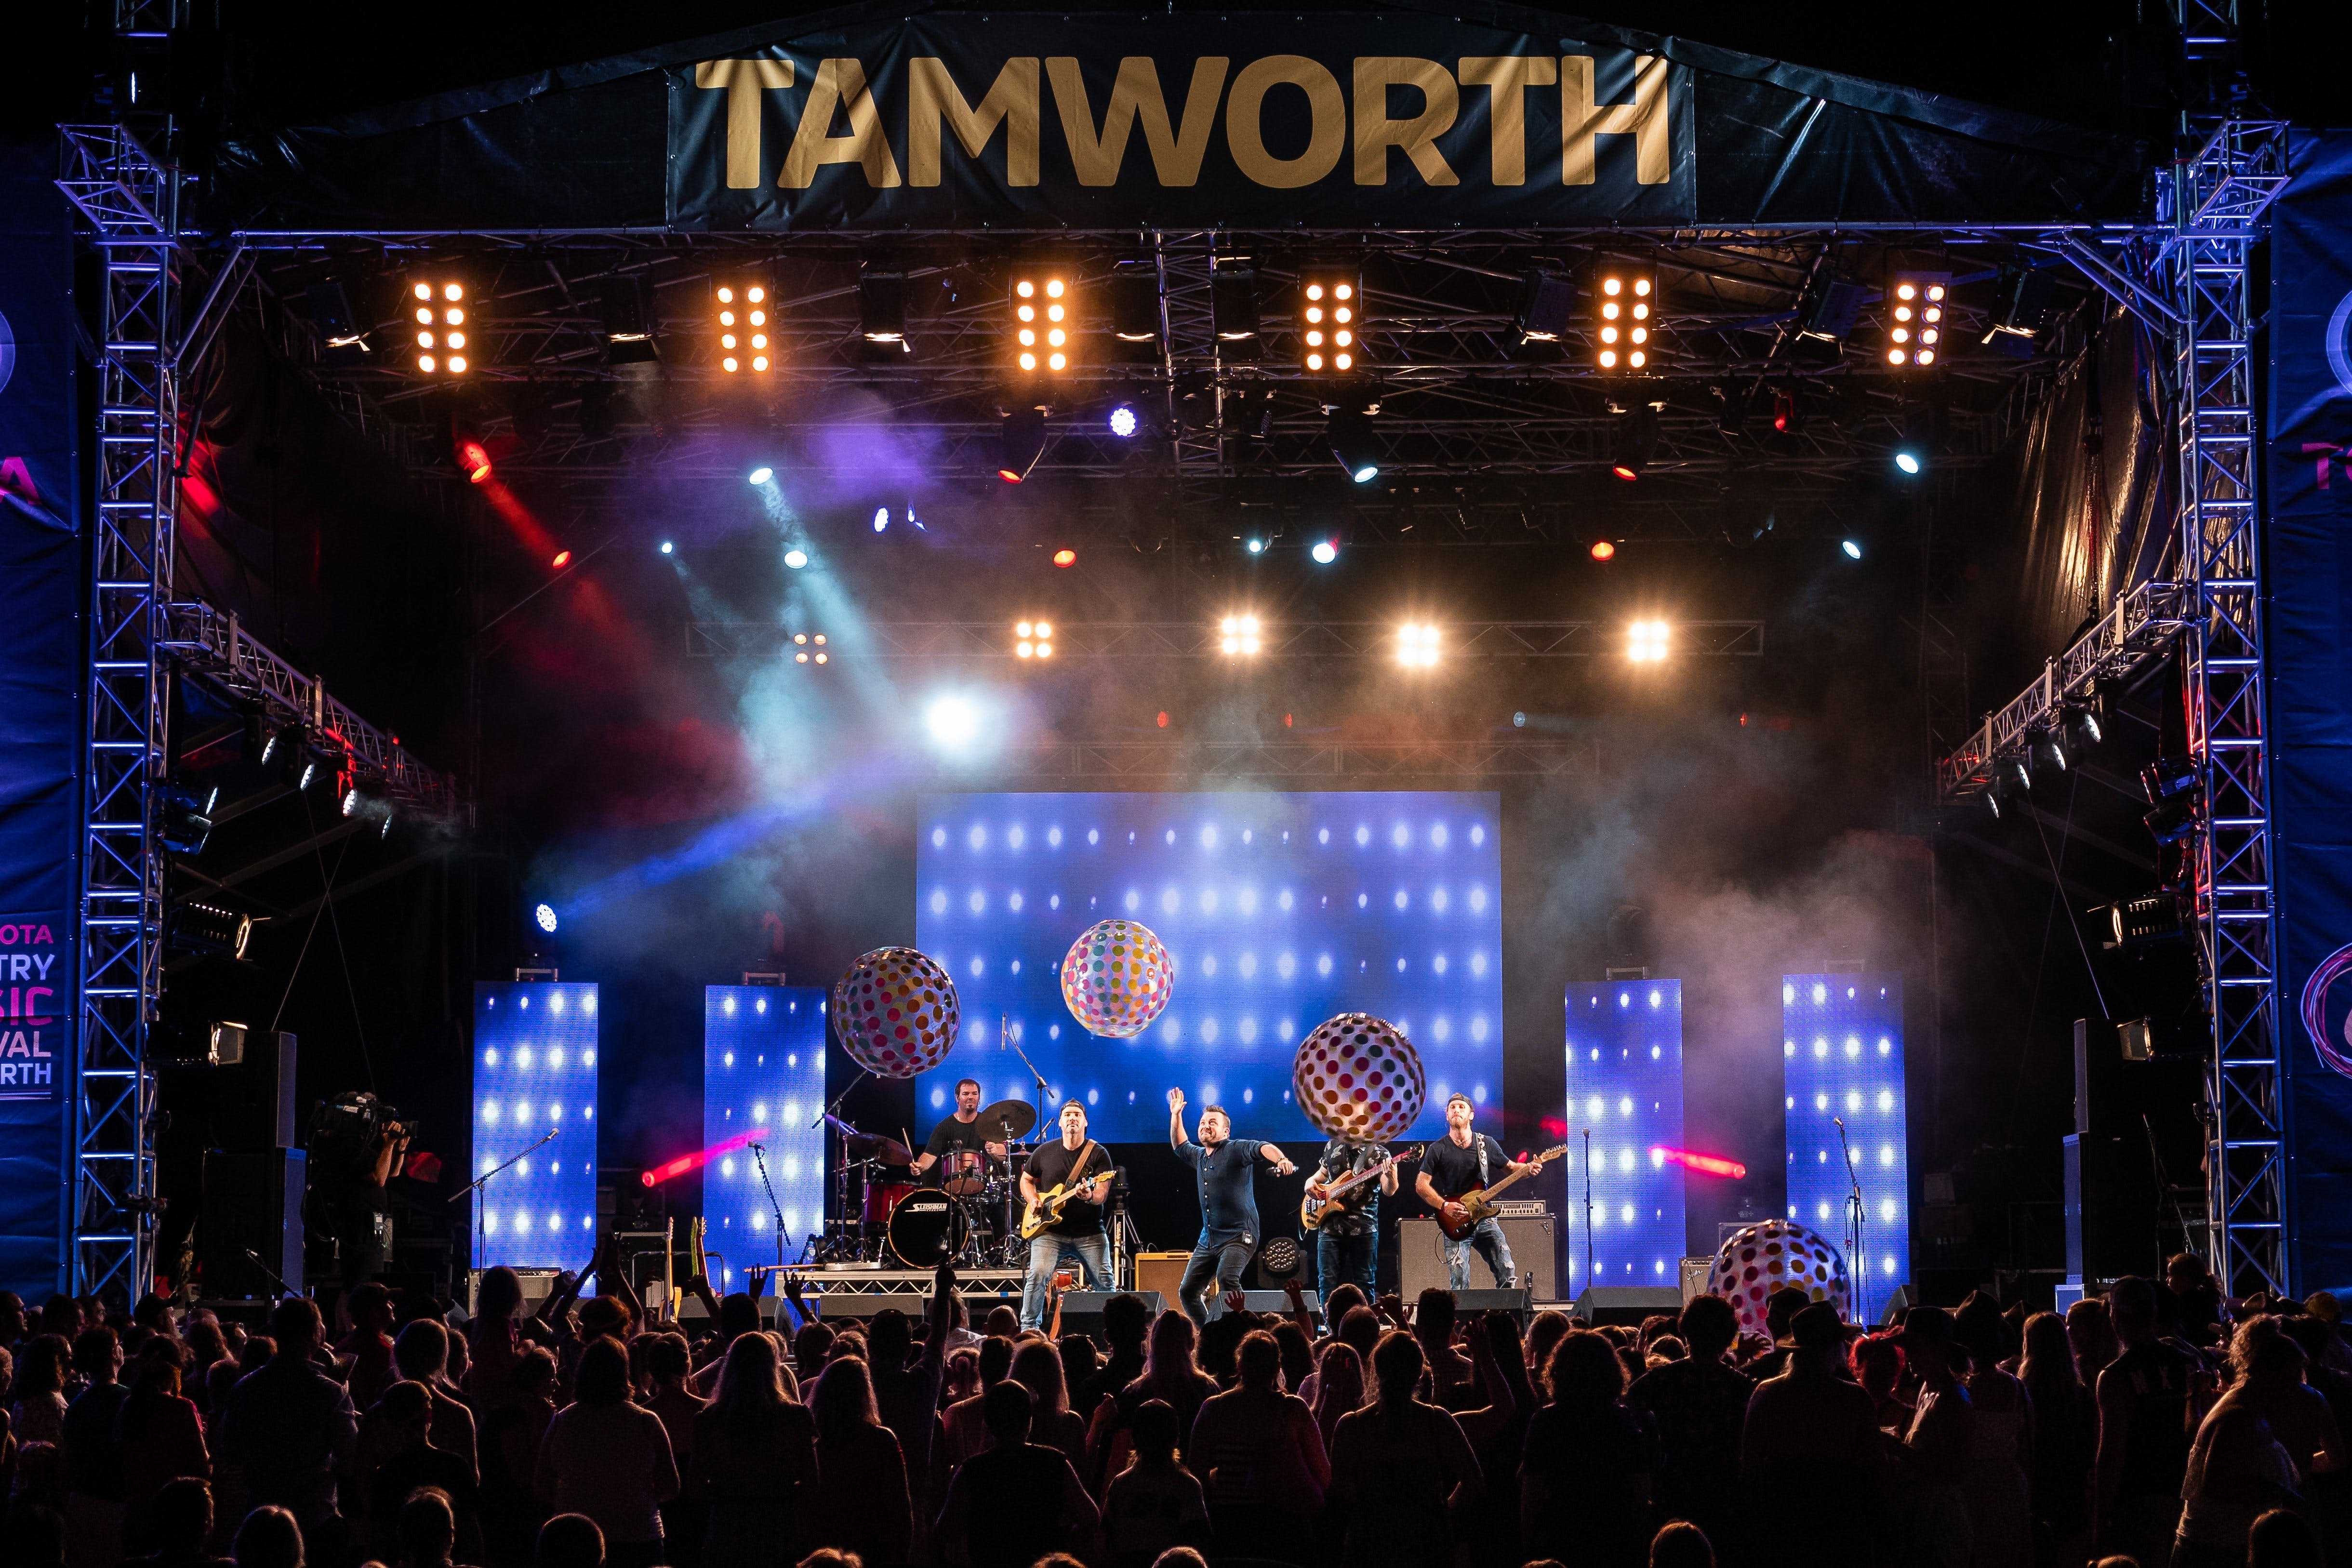 Toyota Country Music Festival Tamworth - Pubs and Clubs